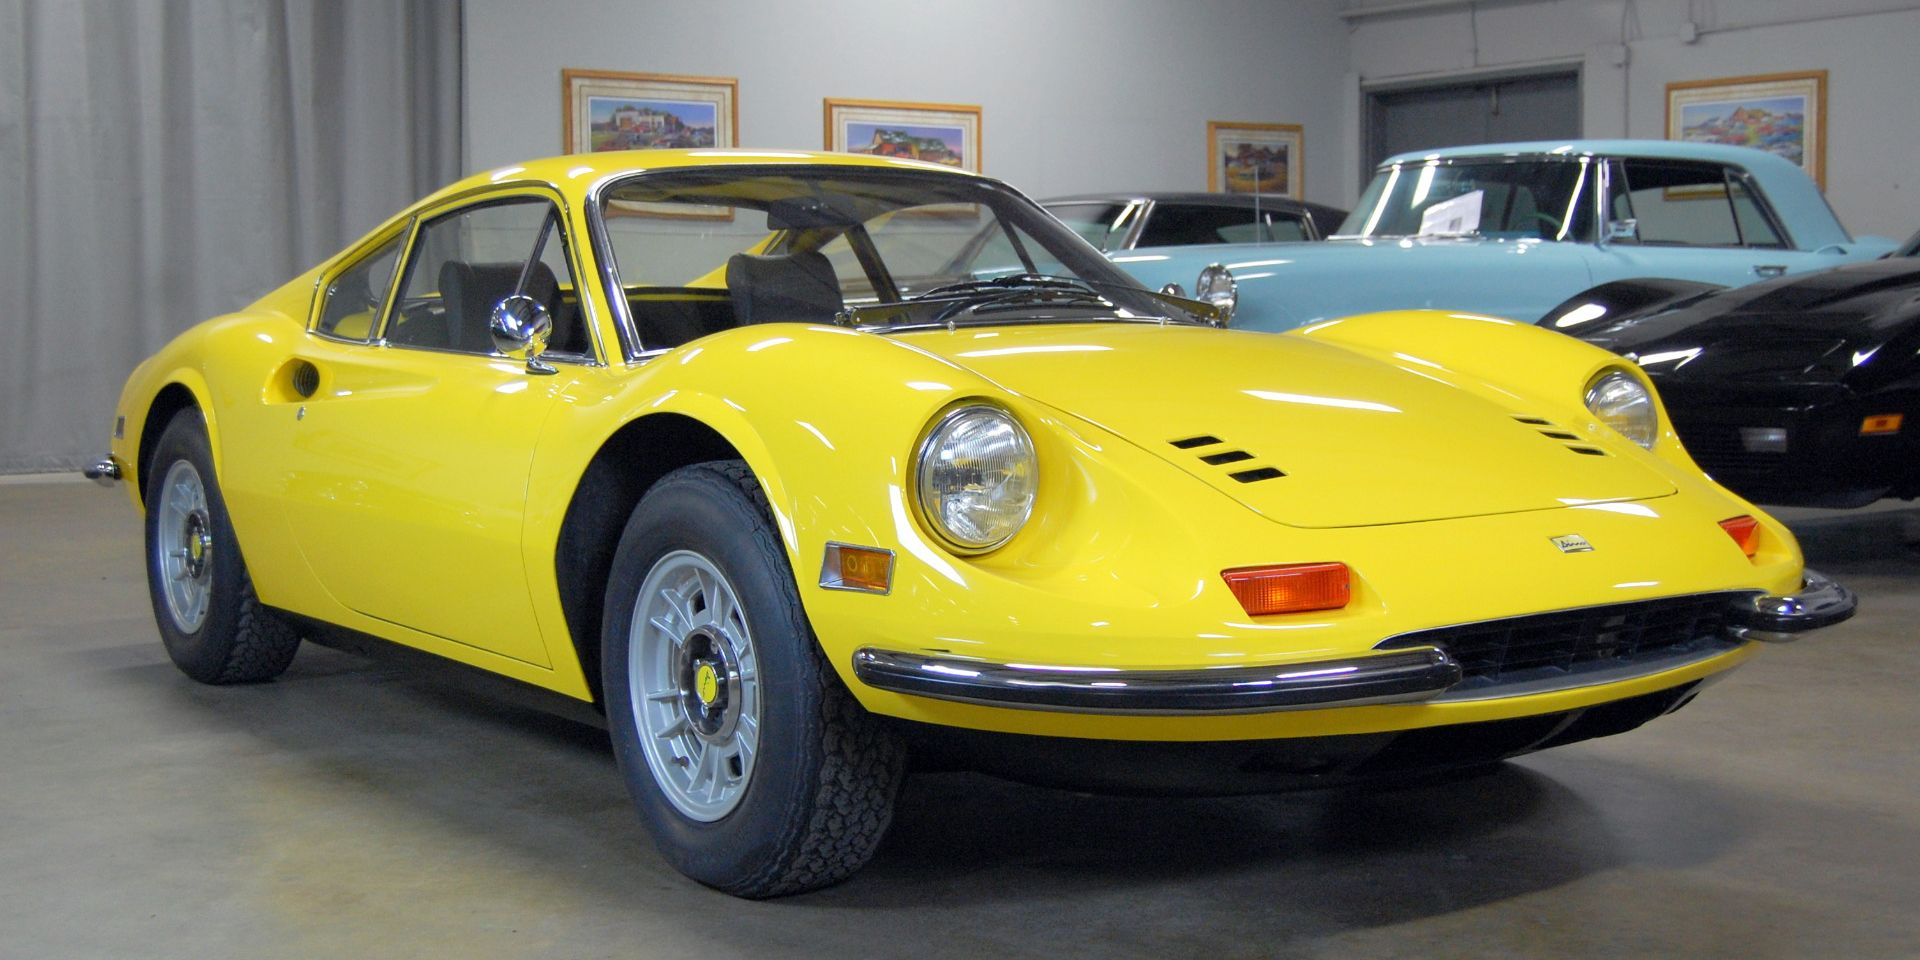 Rare And Ridiculous Ebay Cars You Have To See Ebay Cars Car Vintage Cars